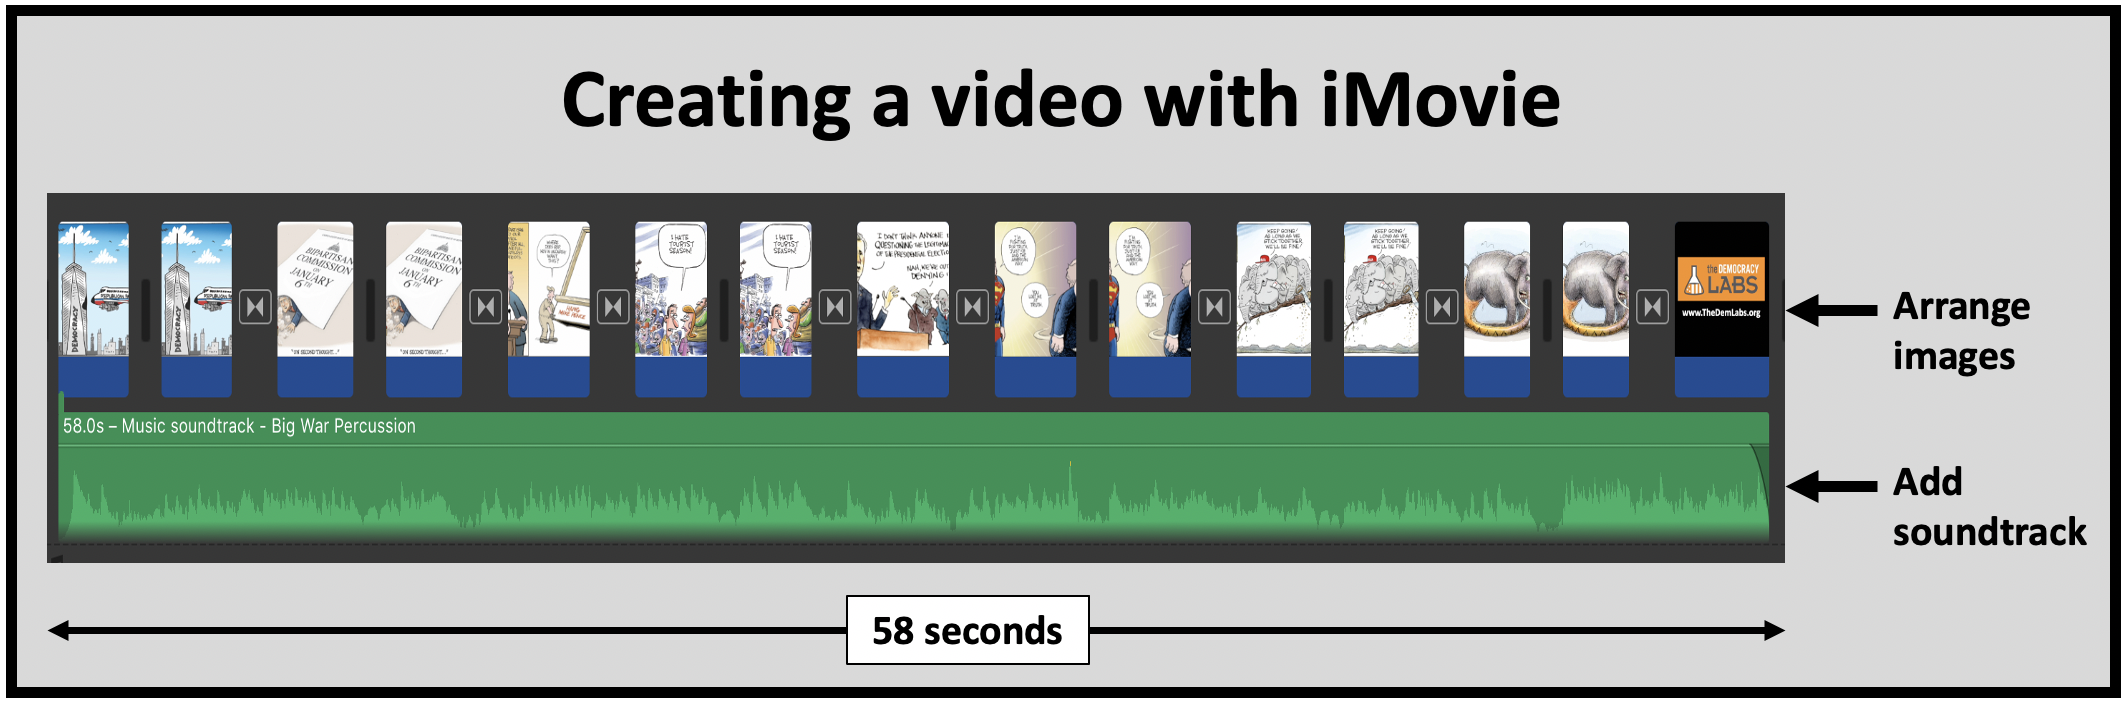 iMovie is a free app to create videos